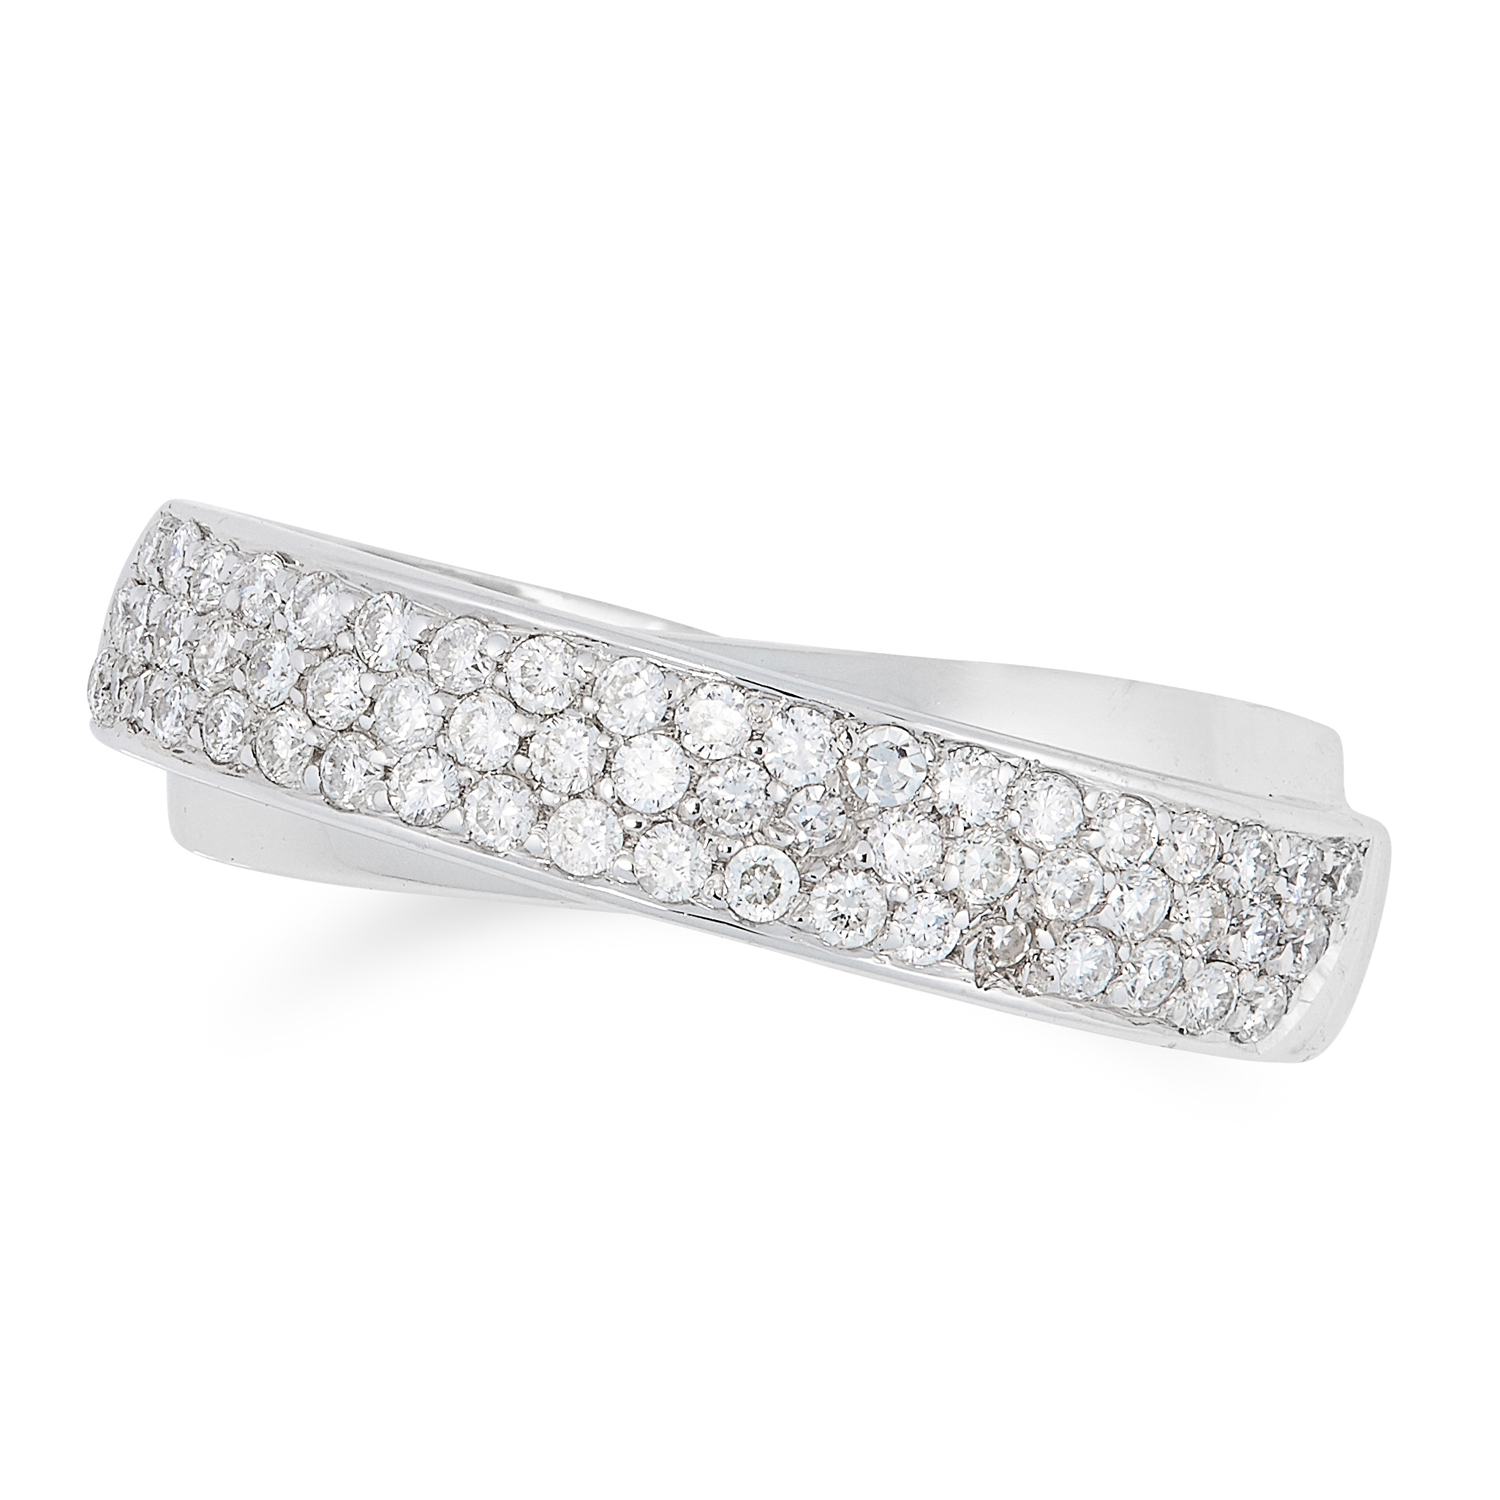 A DIAMOND CROSSOVER RING in 18ct white gold, designed as two overlapping bands, one set with round